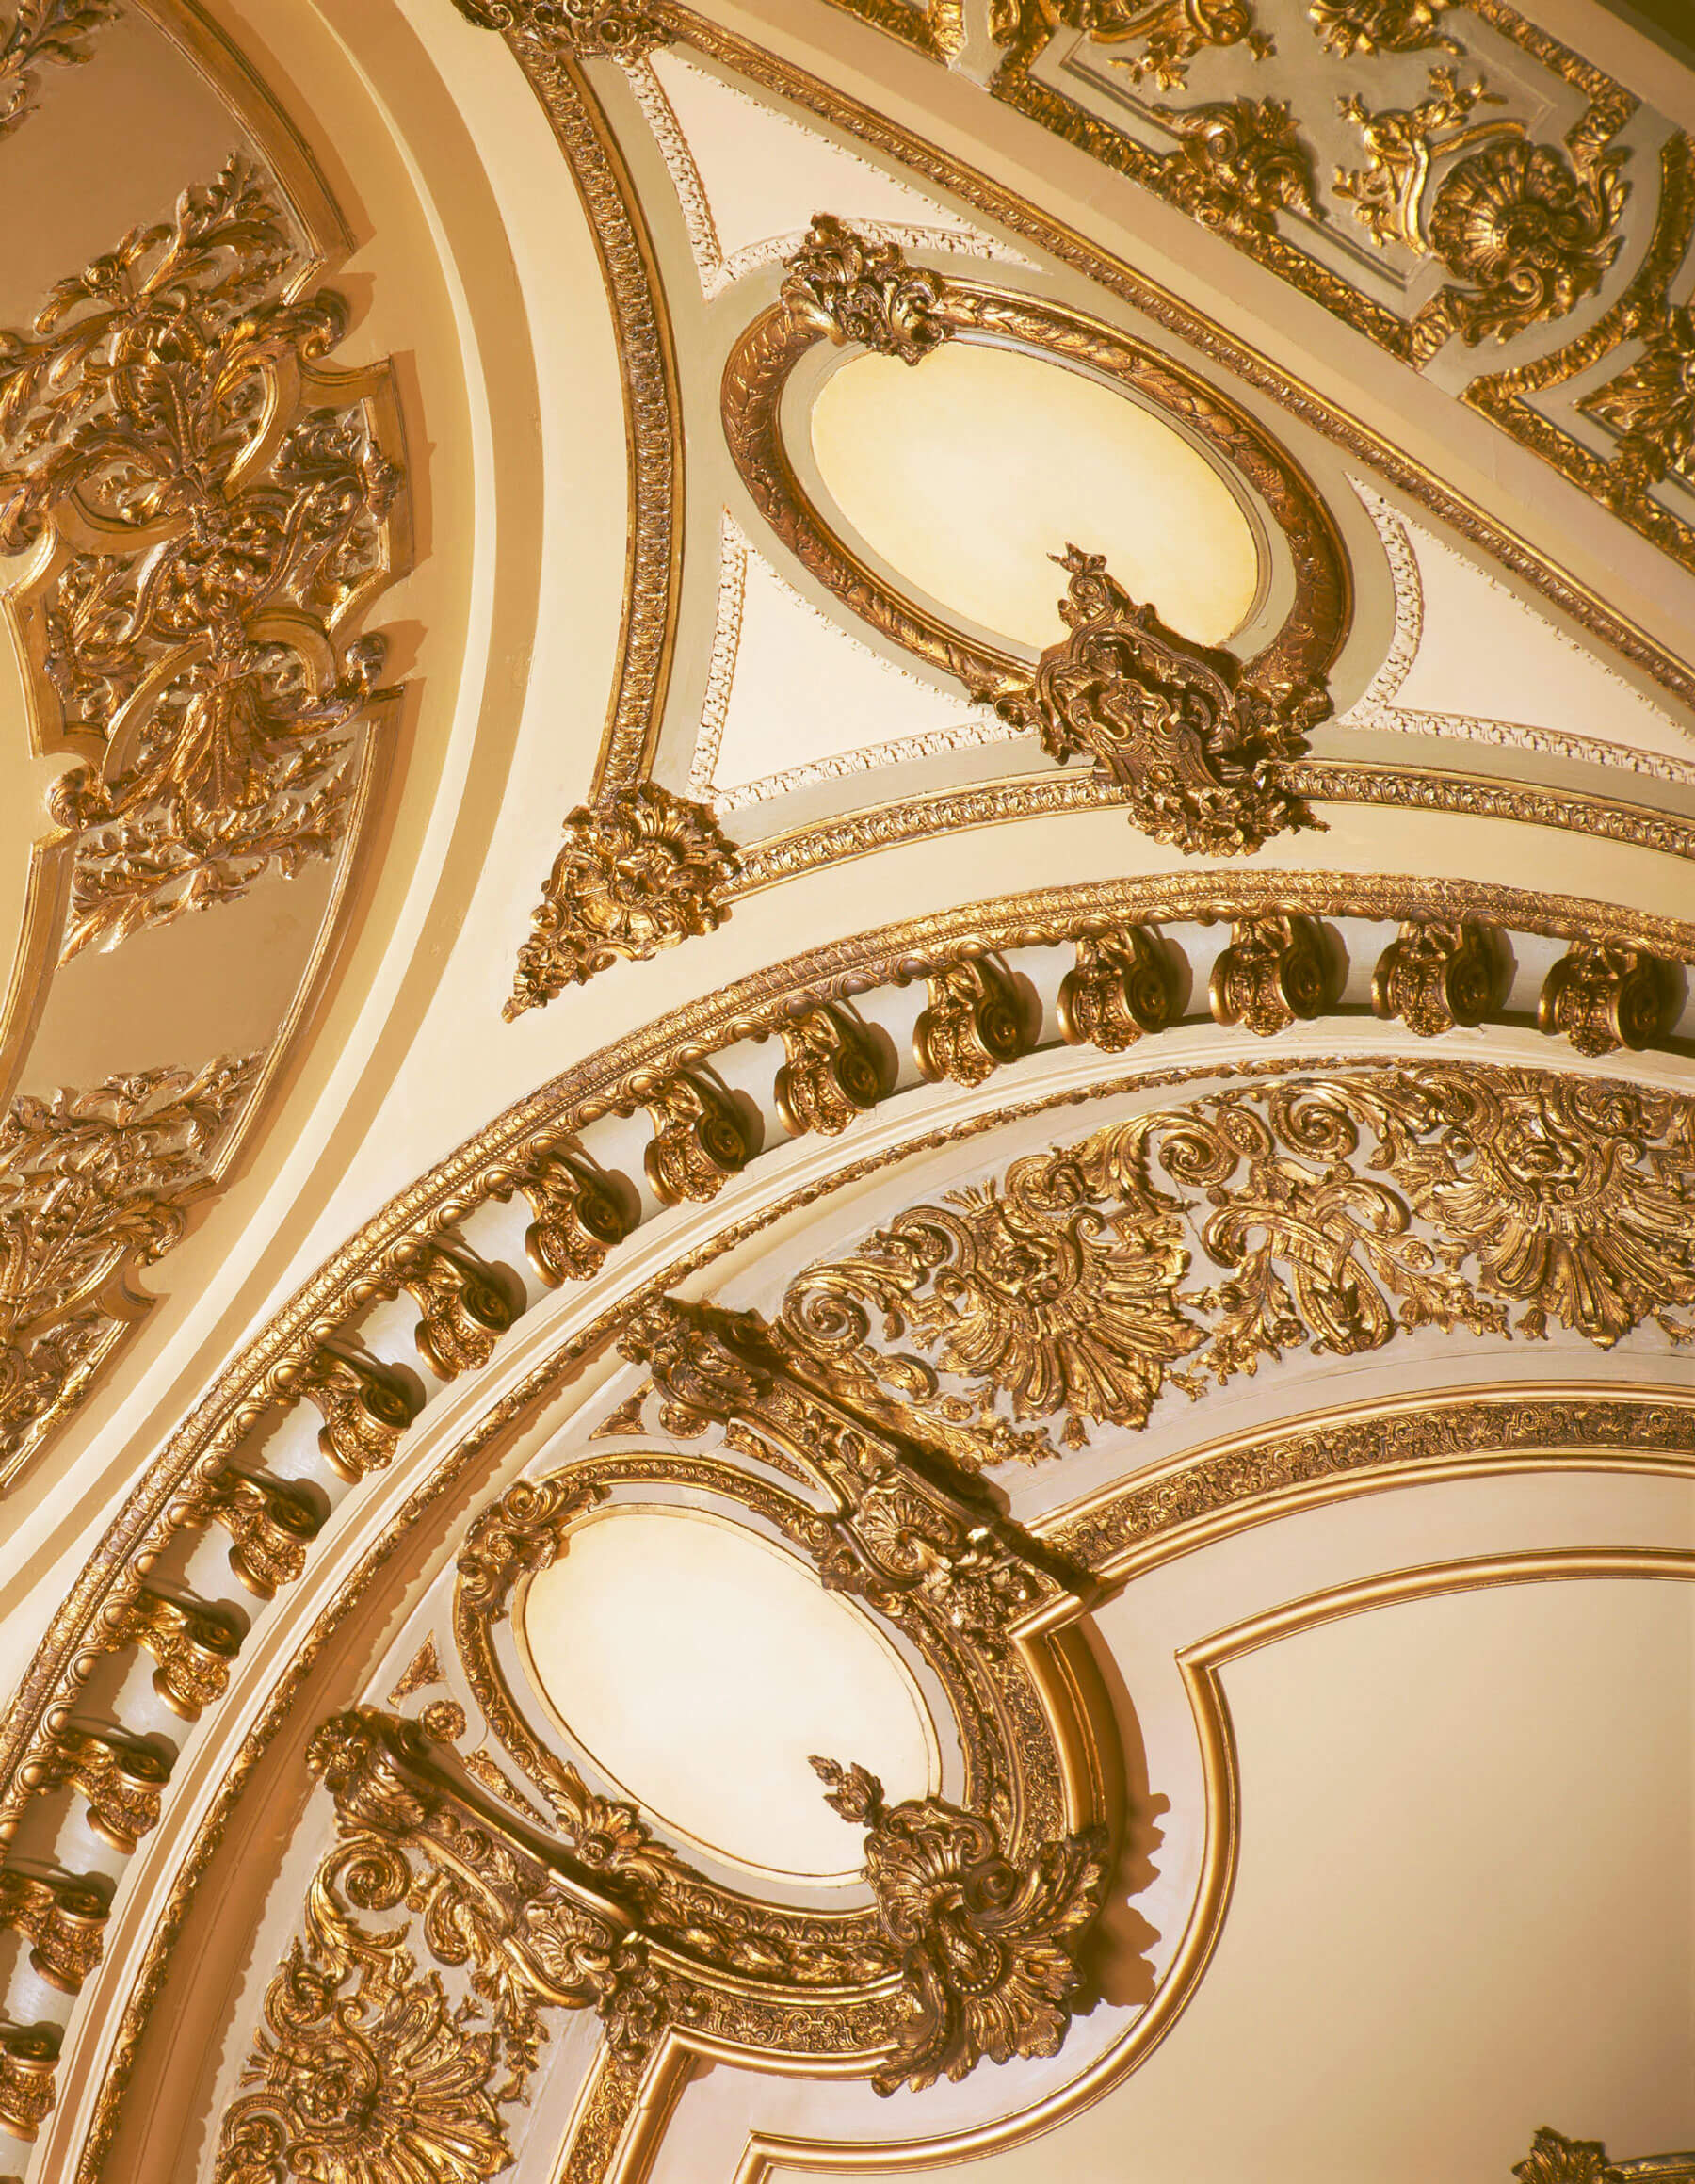 Plaster details of an arc, with gold paint.